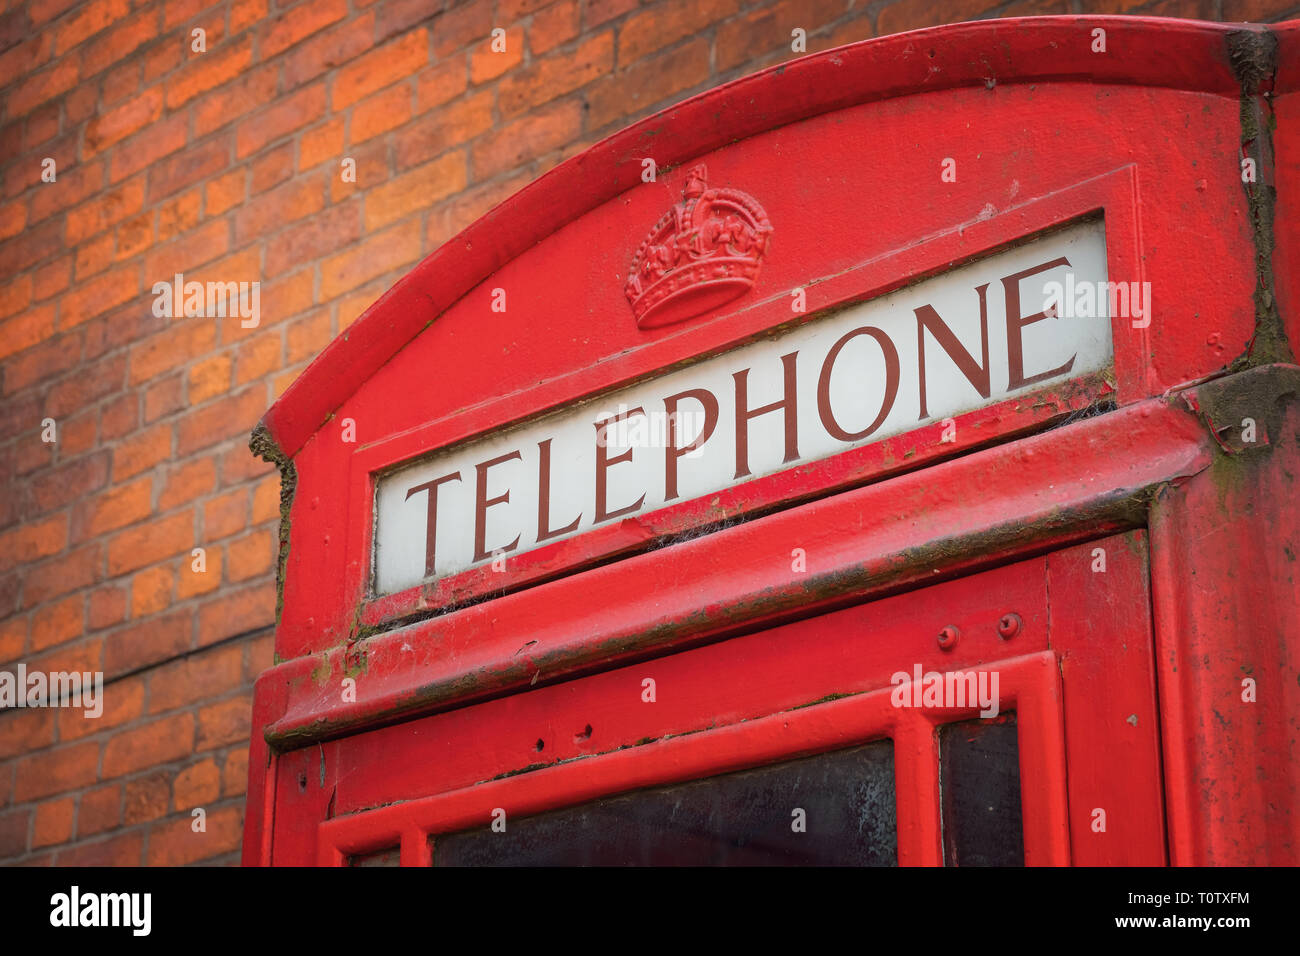 Manchester, UK - May 19 2018: Traditional vintage red K6 telephone kiosk at the Science and Industry Museum - Stock Image